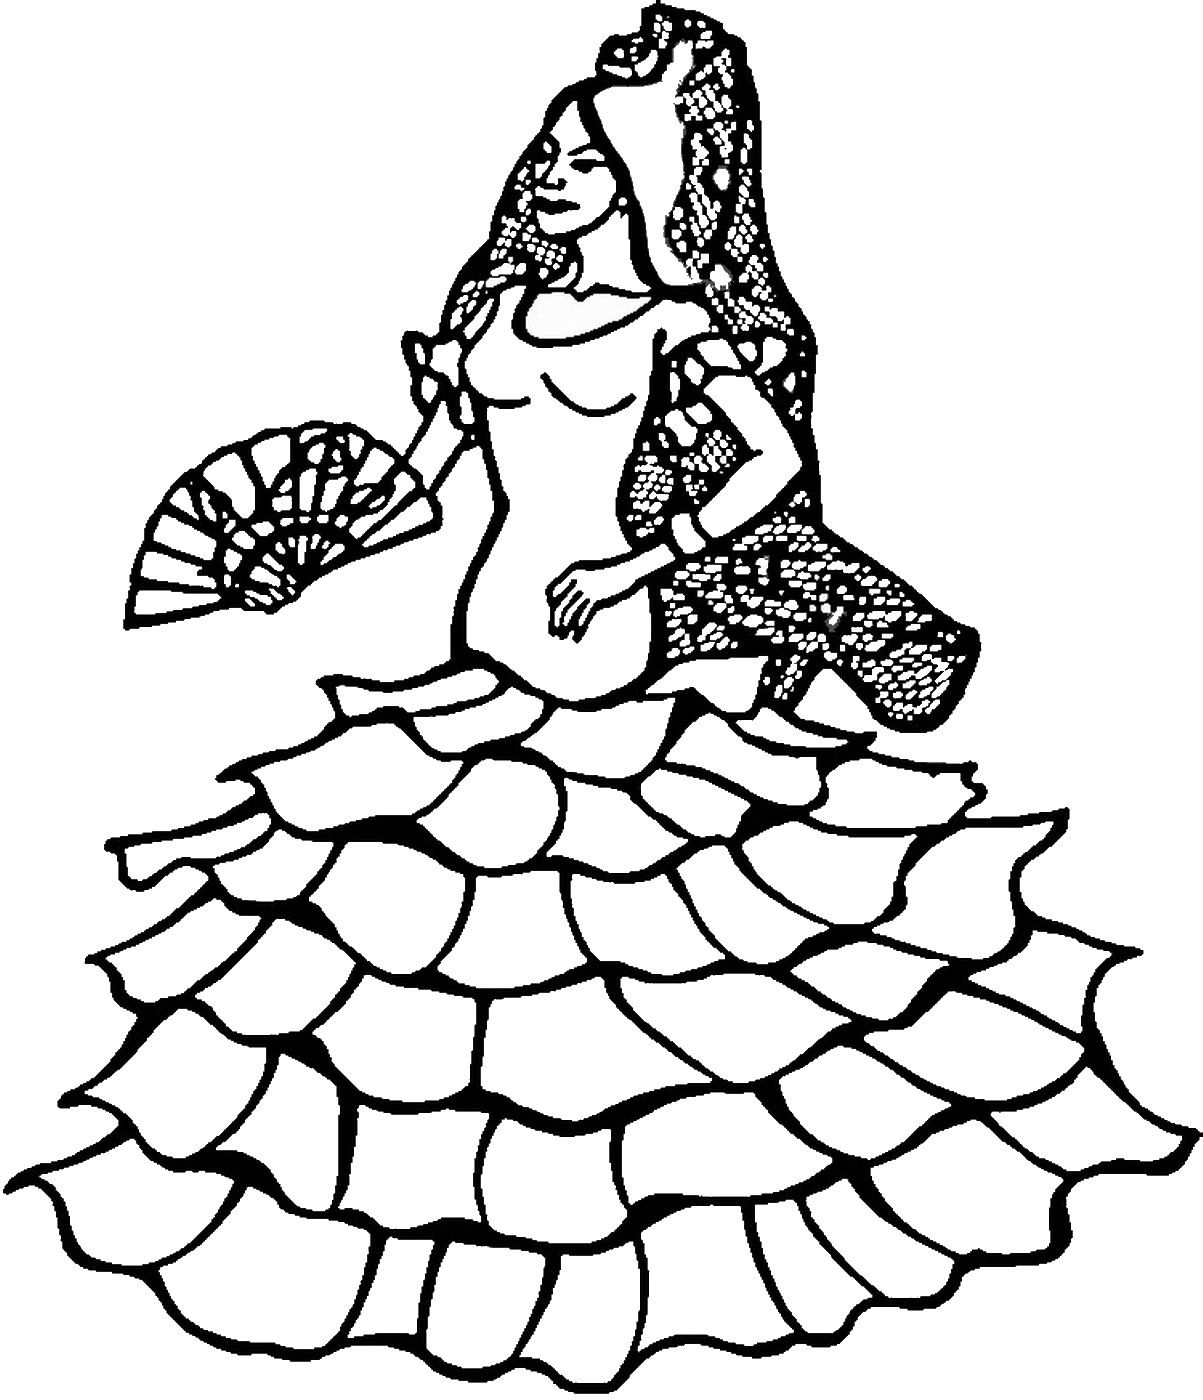 Around World 87 Jpg 1203 1400 Flag Coloring Pages Coloring Pages Disney Coloring Pages